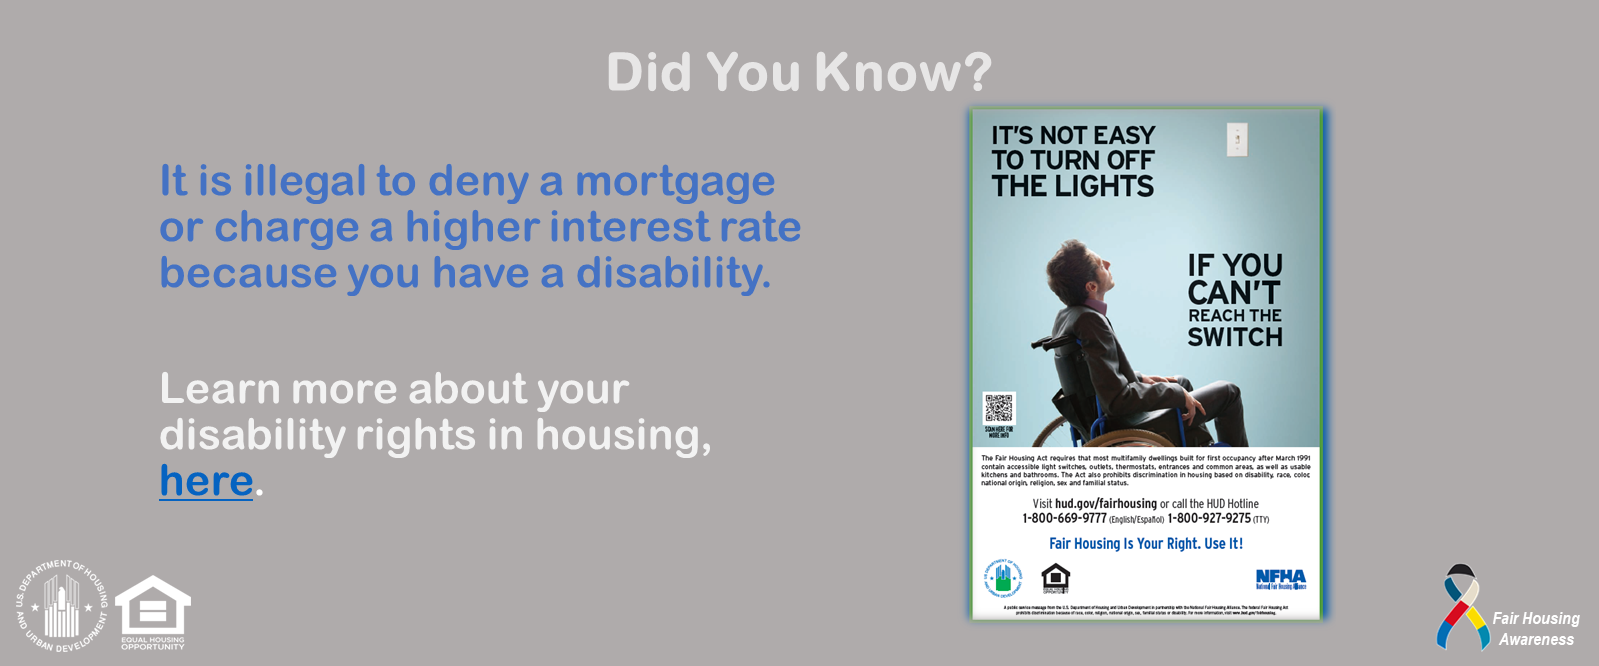 [It is illegal to deny a mortgage or charge a higher interest rate because you have a disability.]. HUD Photo